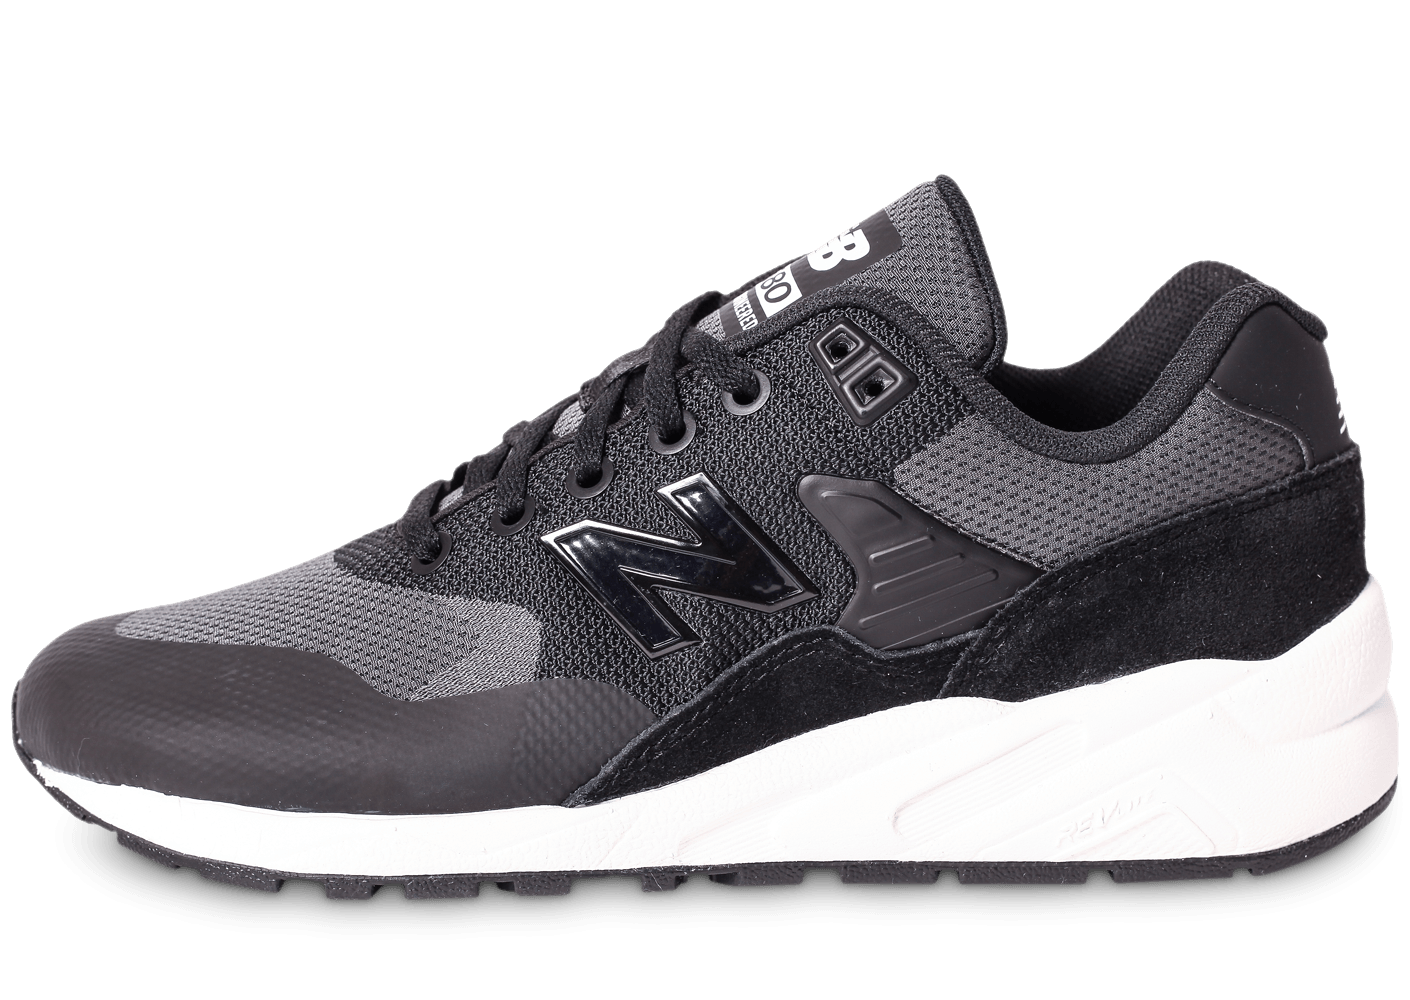 New Balance 580 - MRY580JB noire - Chaussures Homme - Chausport